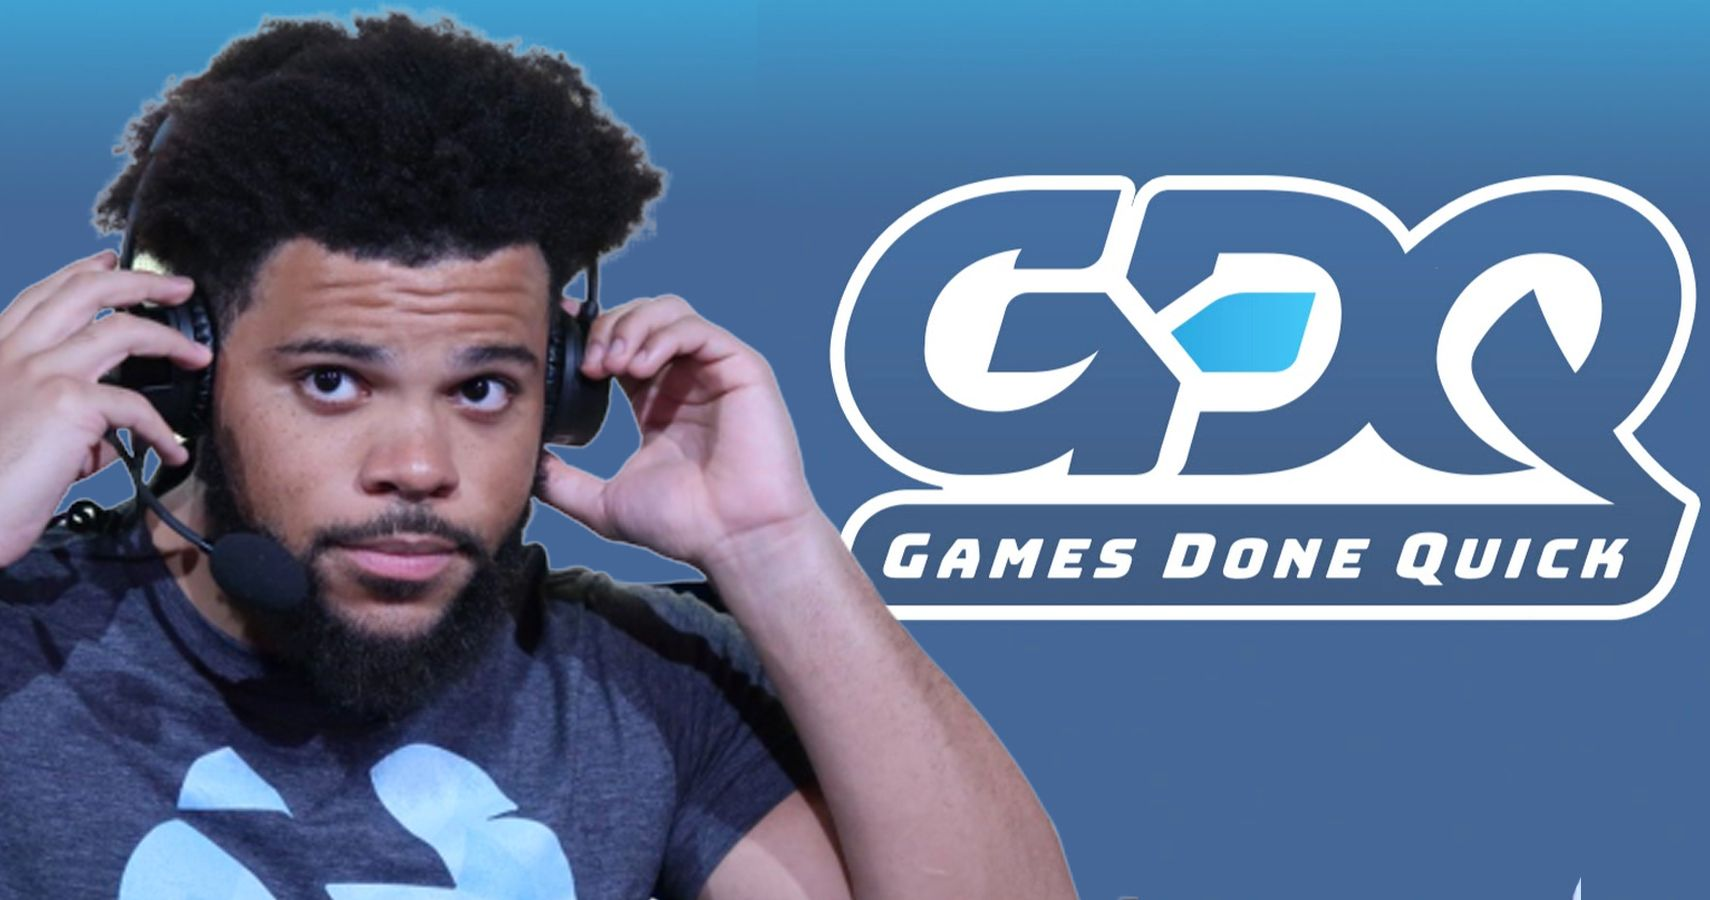 Games Done Quick 2020.Trihex Banned From Next Year S Awesome Games Done Quick